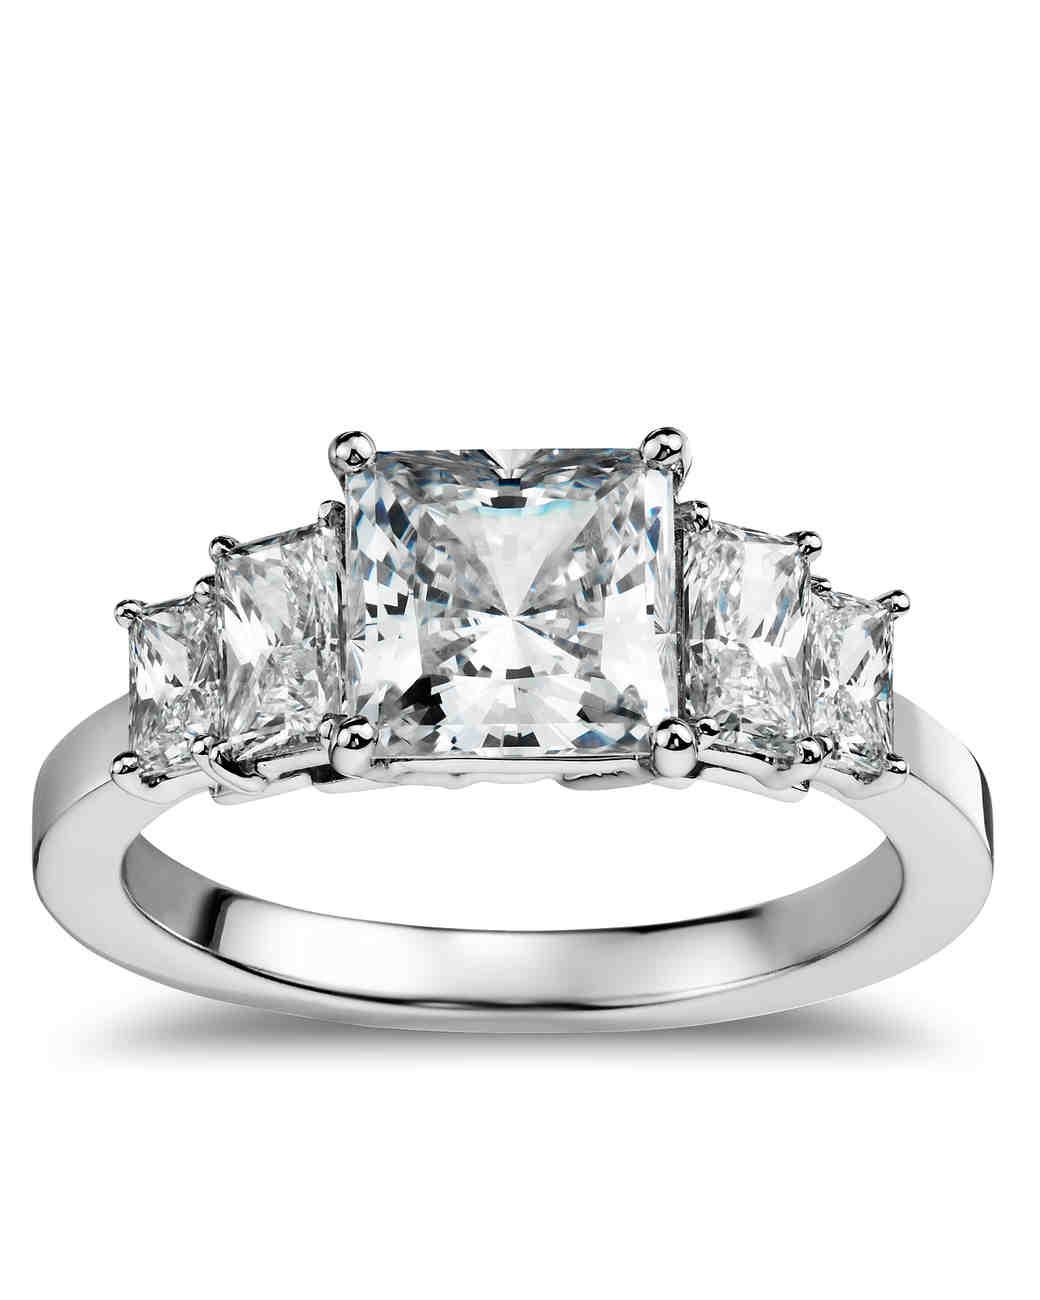 princess-cut diamond engagement rings | martha stewart weddings